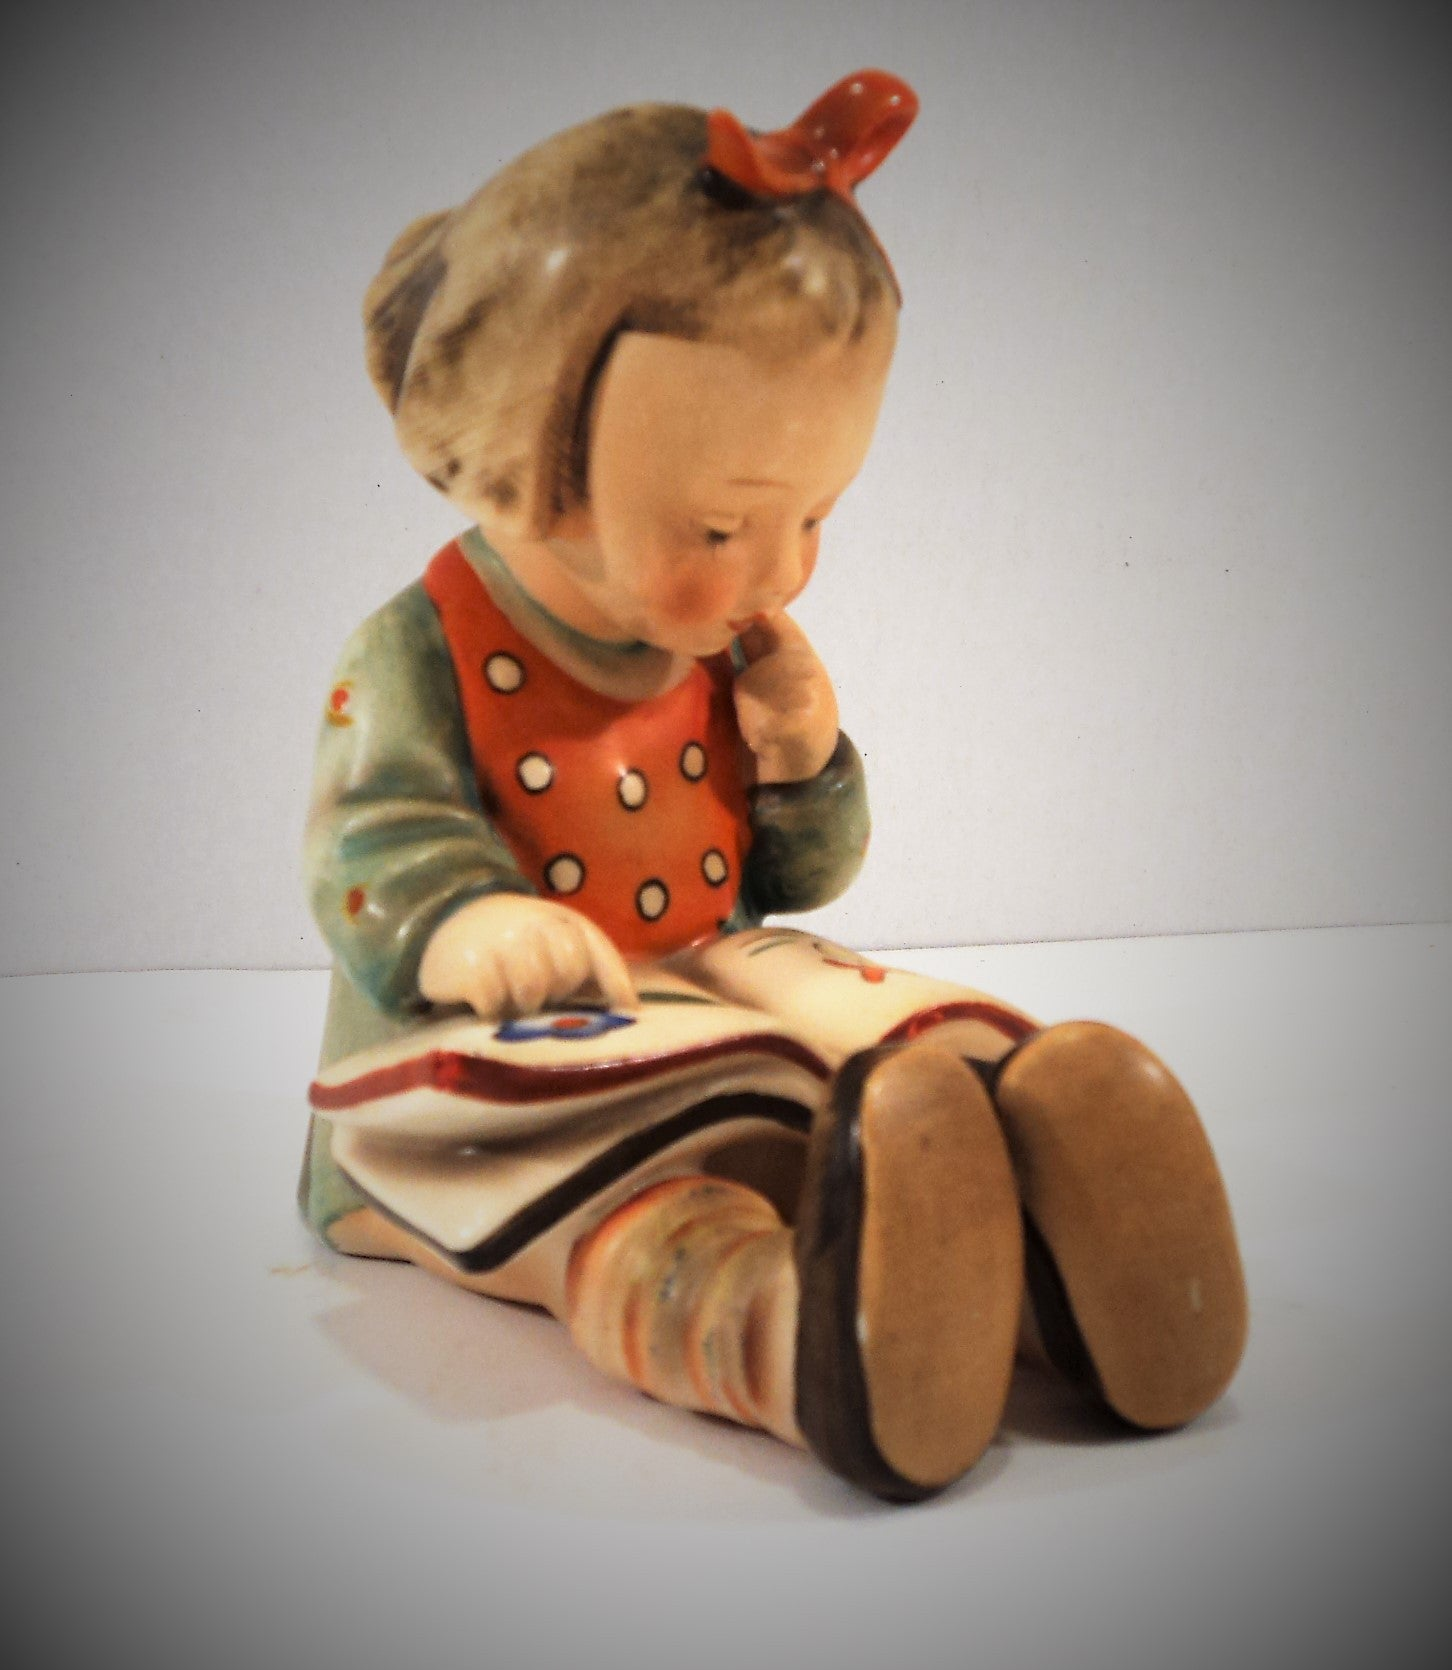 1950s Full Bee TMK-2 Hummel Figurine